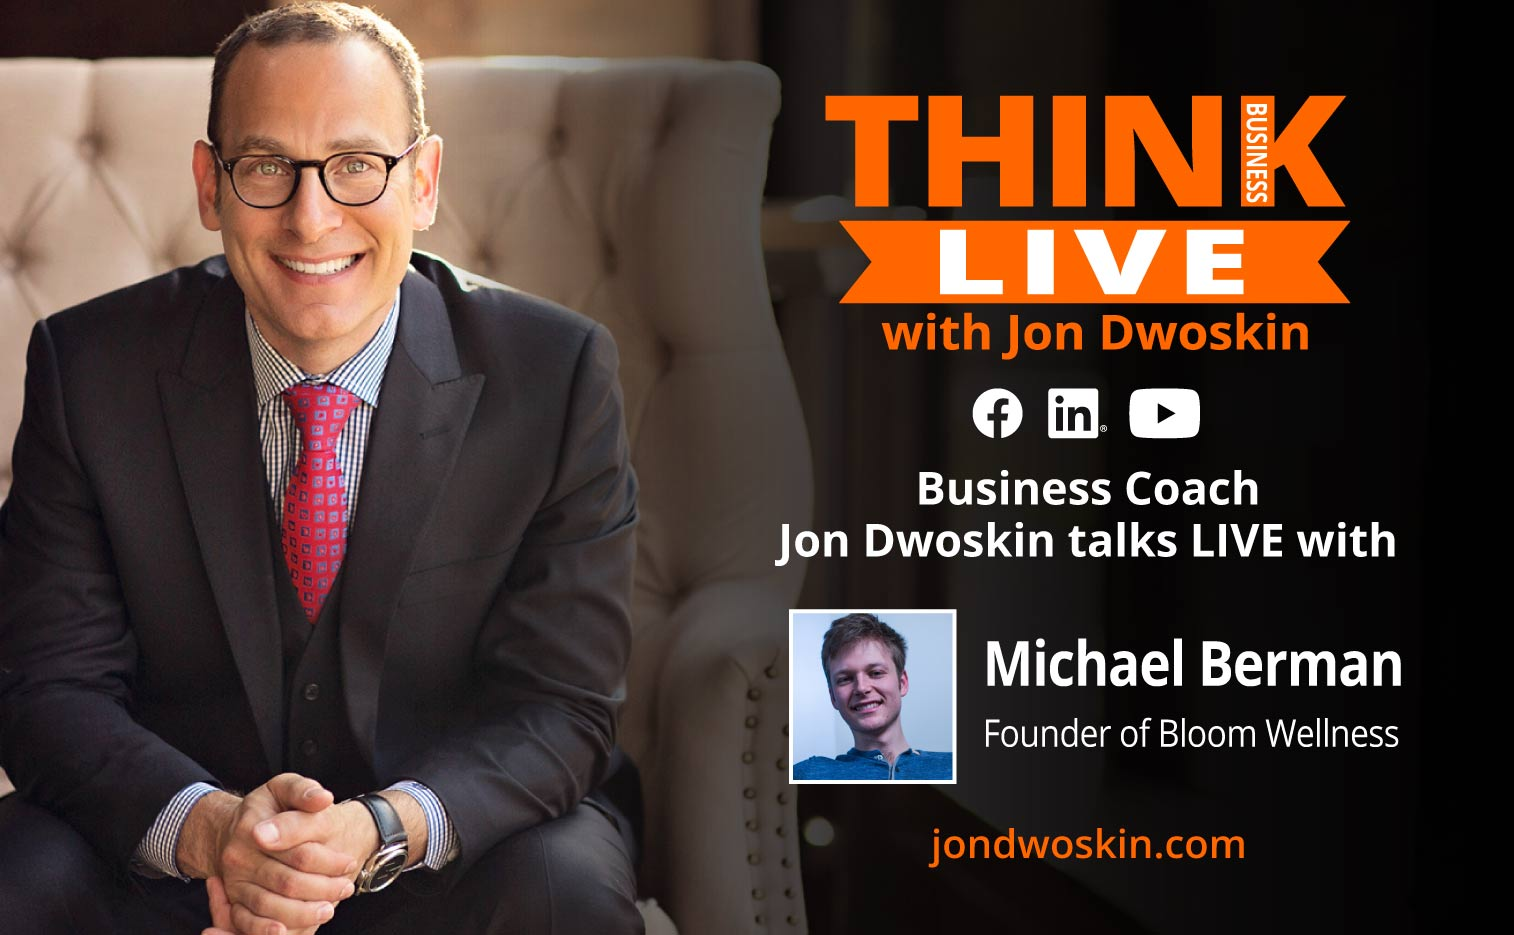 Jon Dwoskin Talks LIVE with Michael Berman, Founder of Bloom Wellness